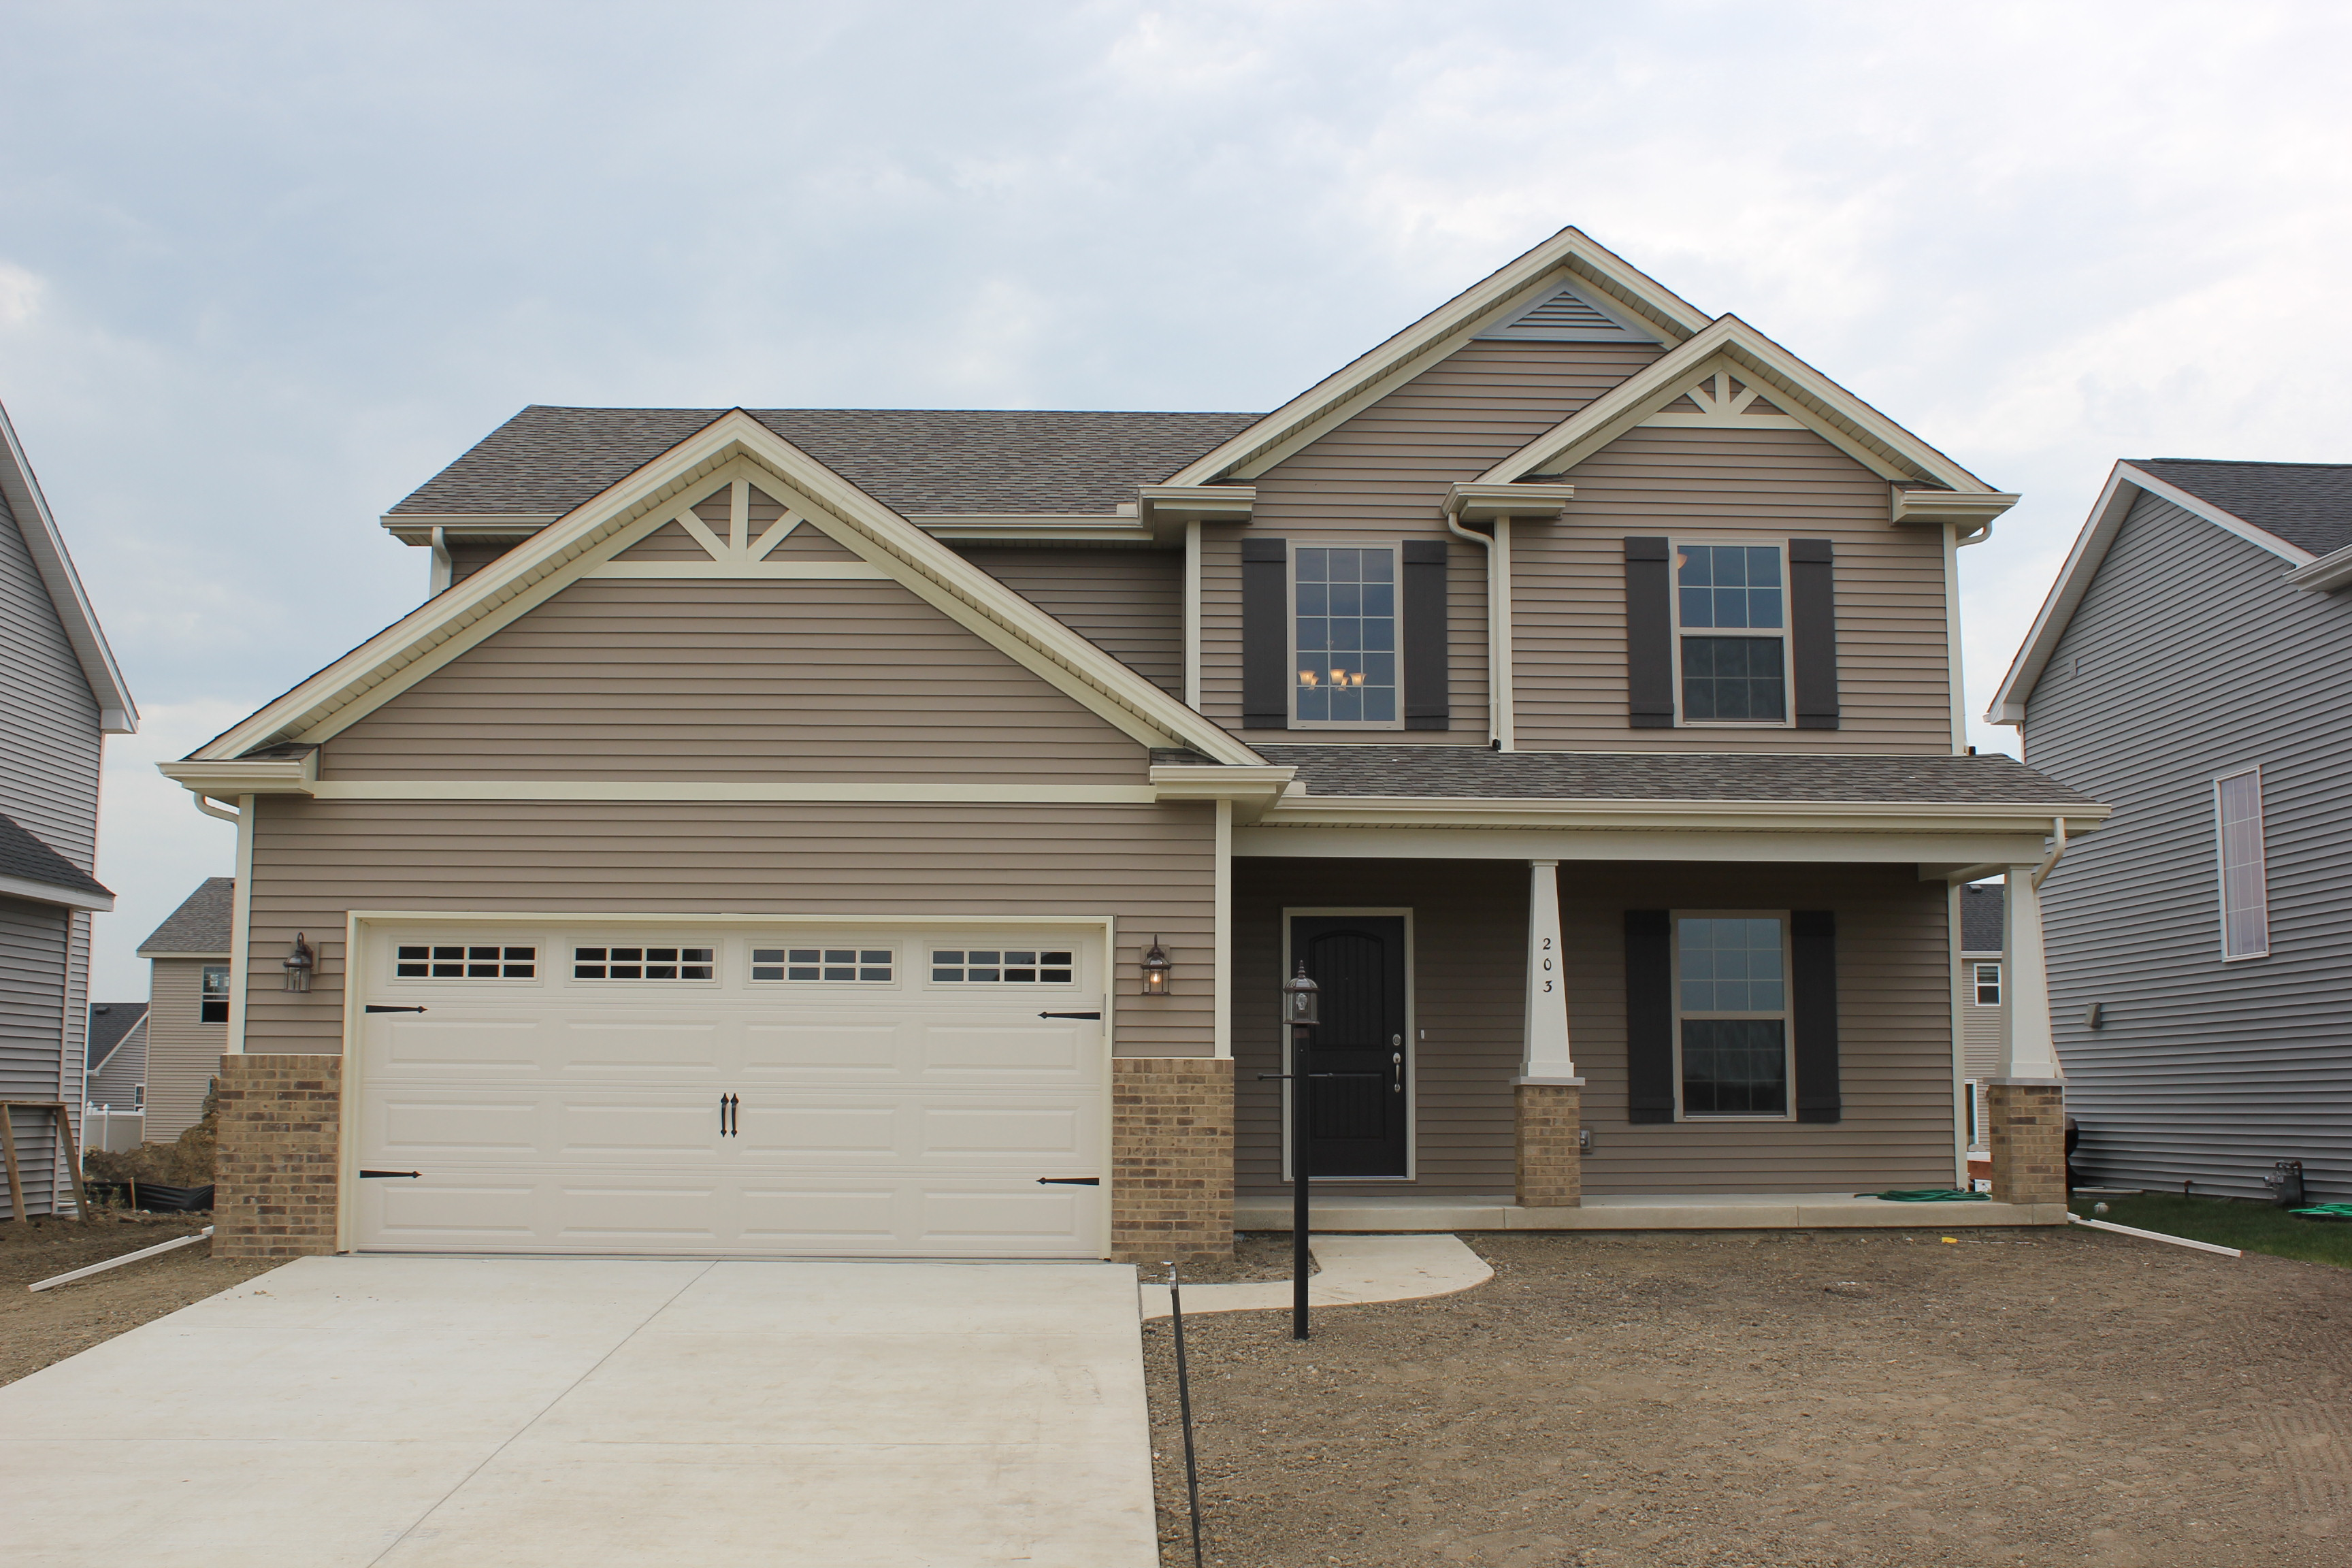 Prairie fields savoy il home sales update champaign for 2 story homes